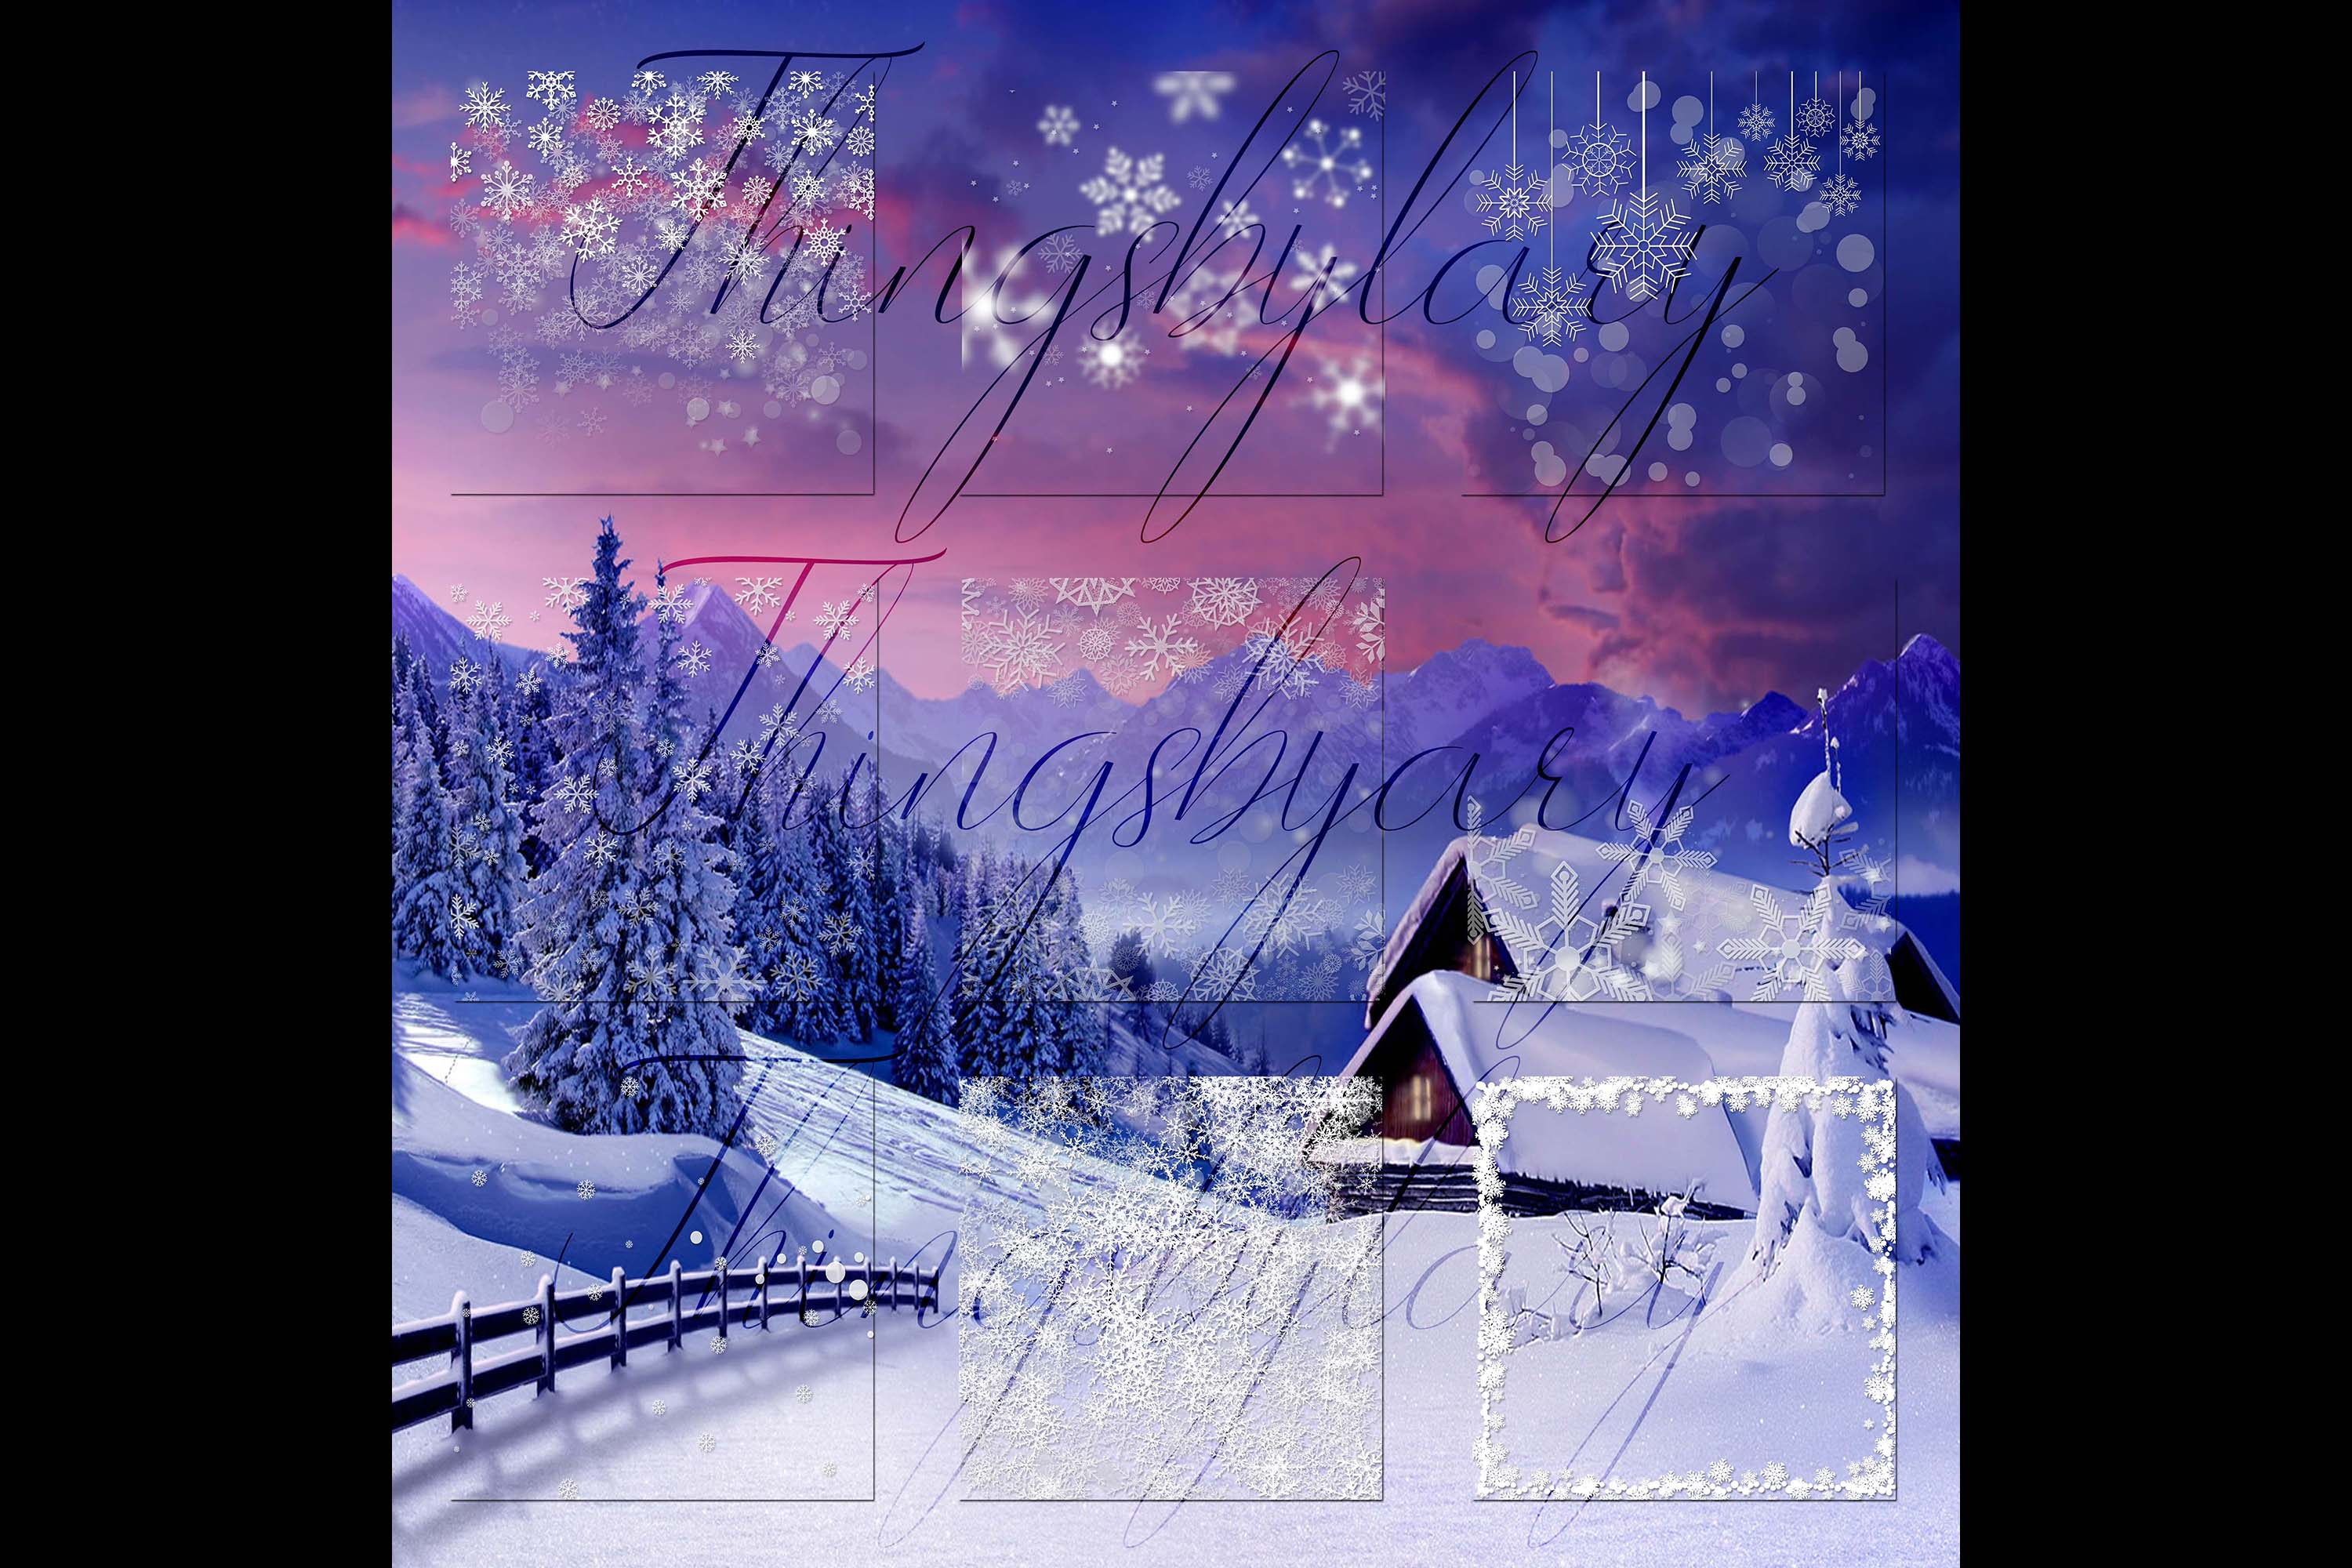 27 Falling Snowflakes Overlay Digital Images PNG Transparent example image 7